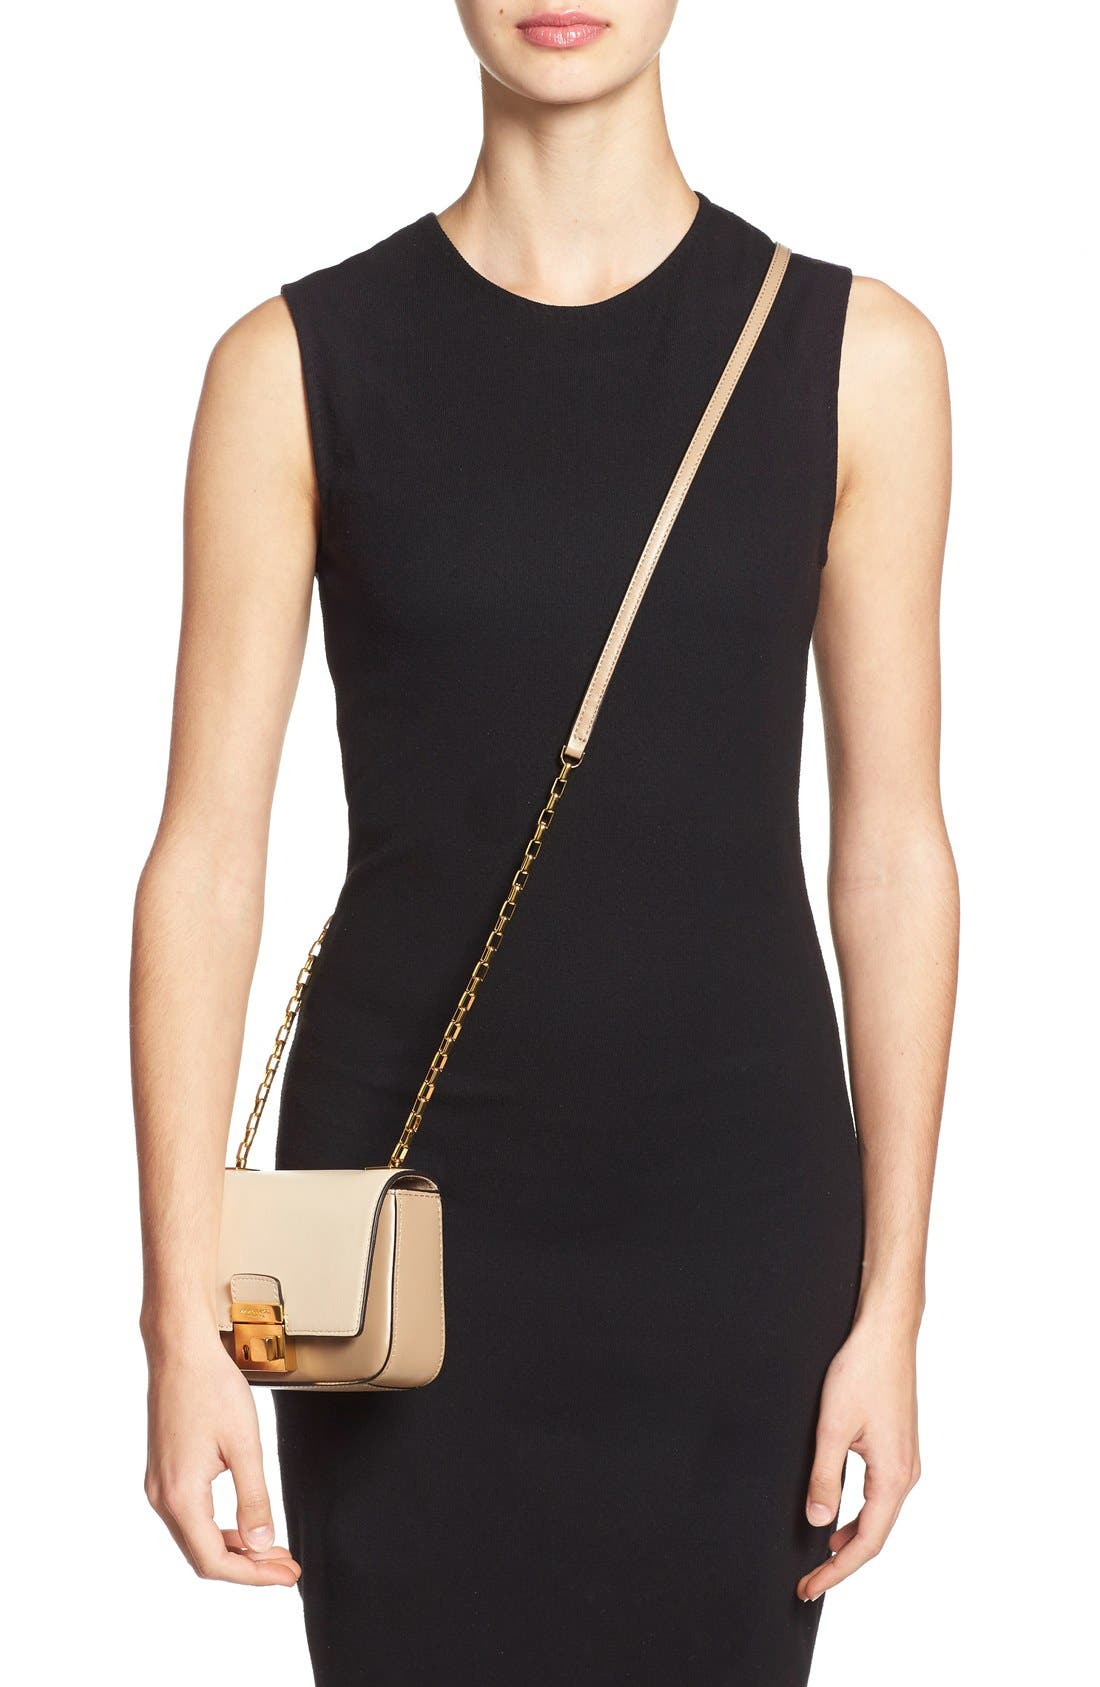 Alternate Image 2  - Michael Kors 'Small Gia' Chain Strap Leather Shoulder Bag